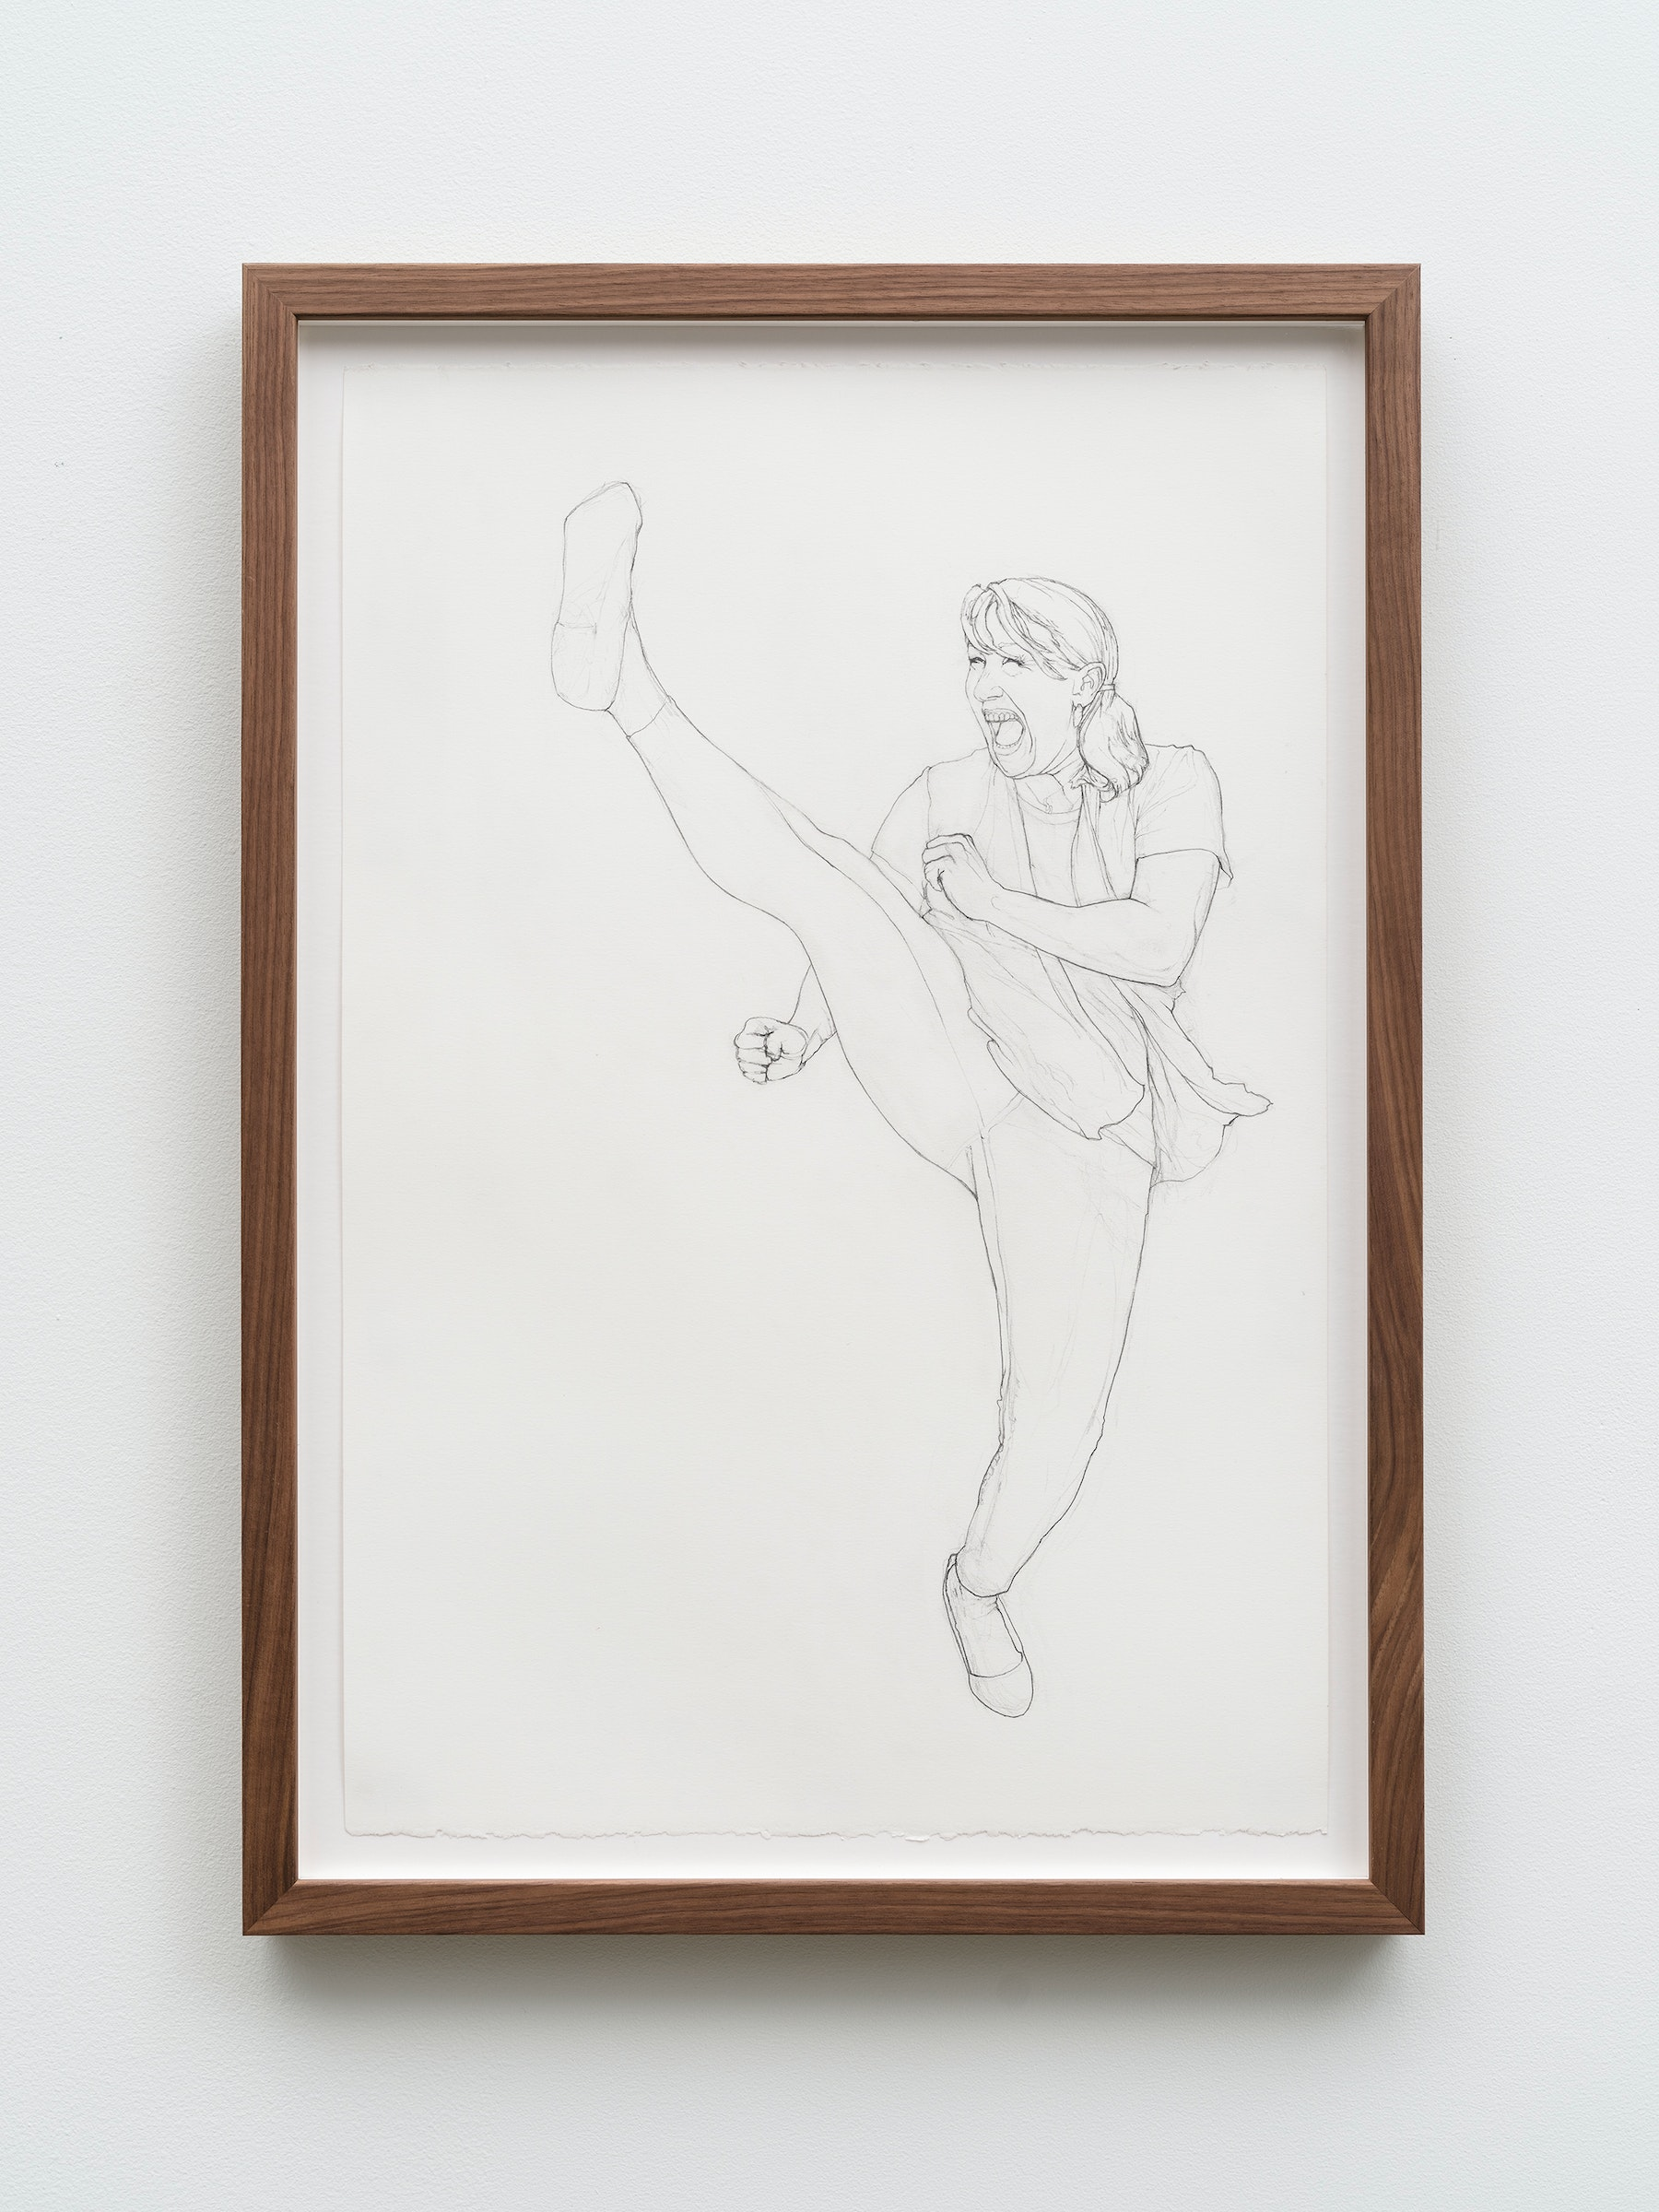 """Andrea Bowers """"Self-Defense Drawings - Study of Linda,"""" 2021 Graphite on paper 22 ³⁄₈"""" x 15"""" [HxW] (56.81 x 38.1 cm) paper size; 25 ¹⁄₄"""" x 17 ³⁄₄"""" x 1 ¹⁄₂"""" [HxWxD] (64.13 x 45.08 x 3.81 cm) framed Inventory #BOW590 Courtesy of the artist and Vielmetter Los Angeles Photo credit: Jeff McLane"""